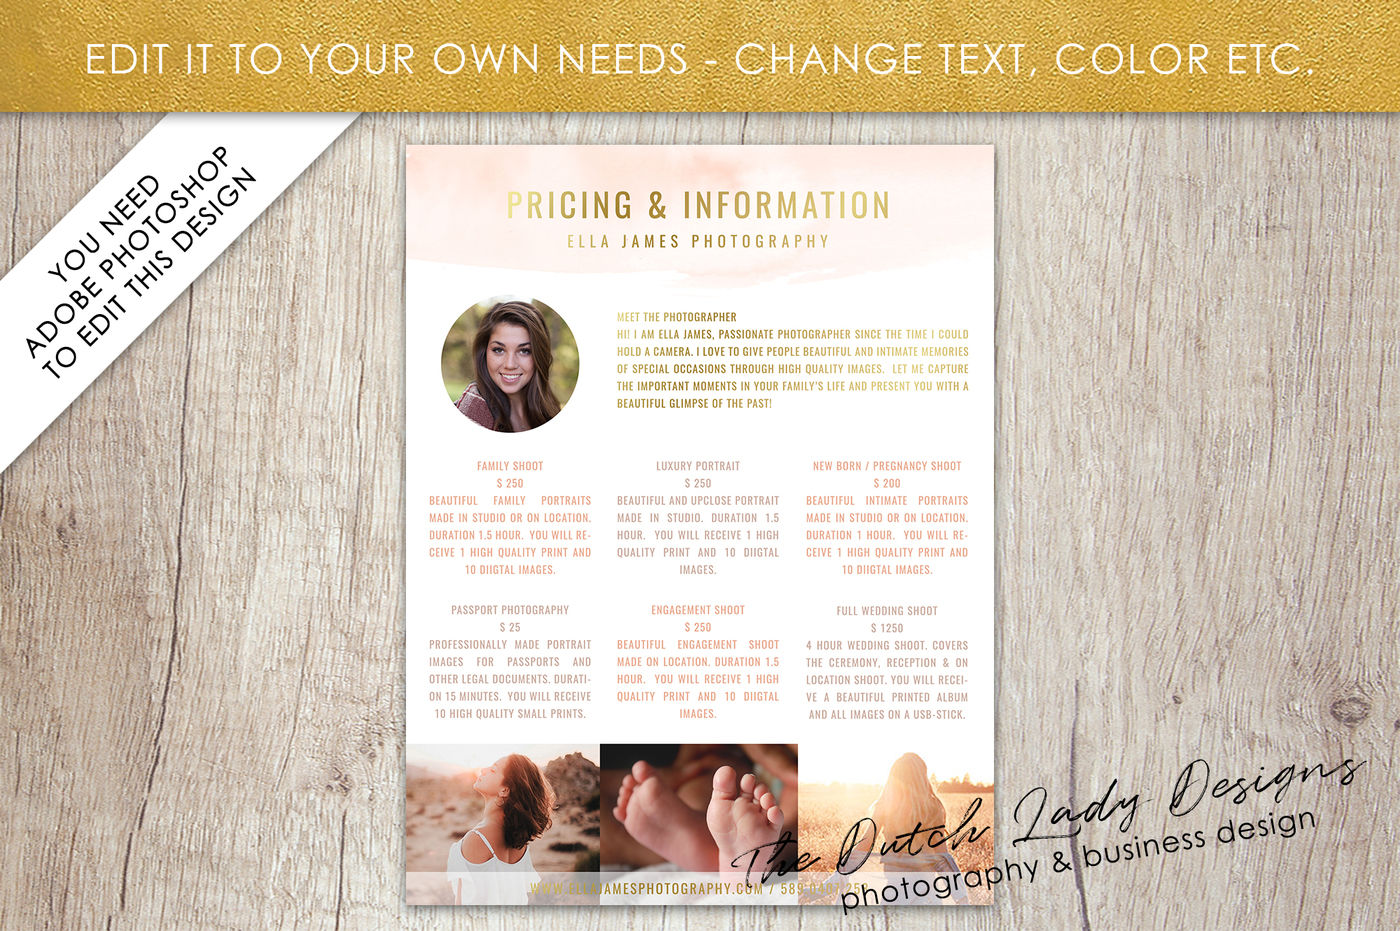 PSD Photography Pricing Guide #1 By The Dutch Lady Designs